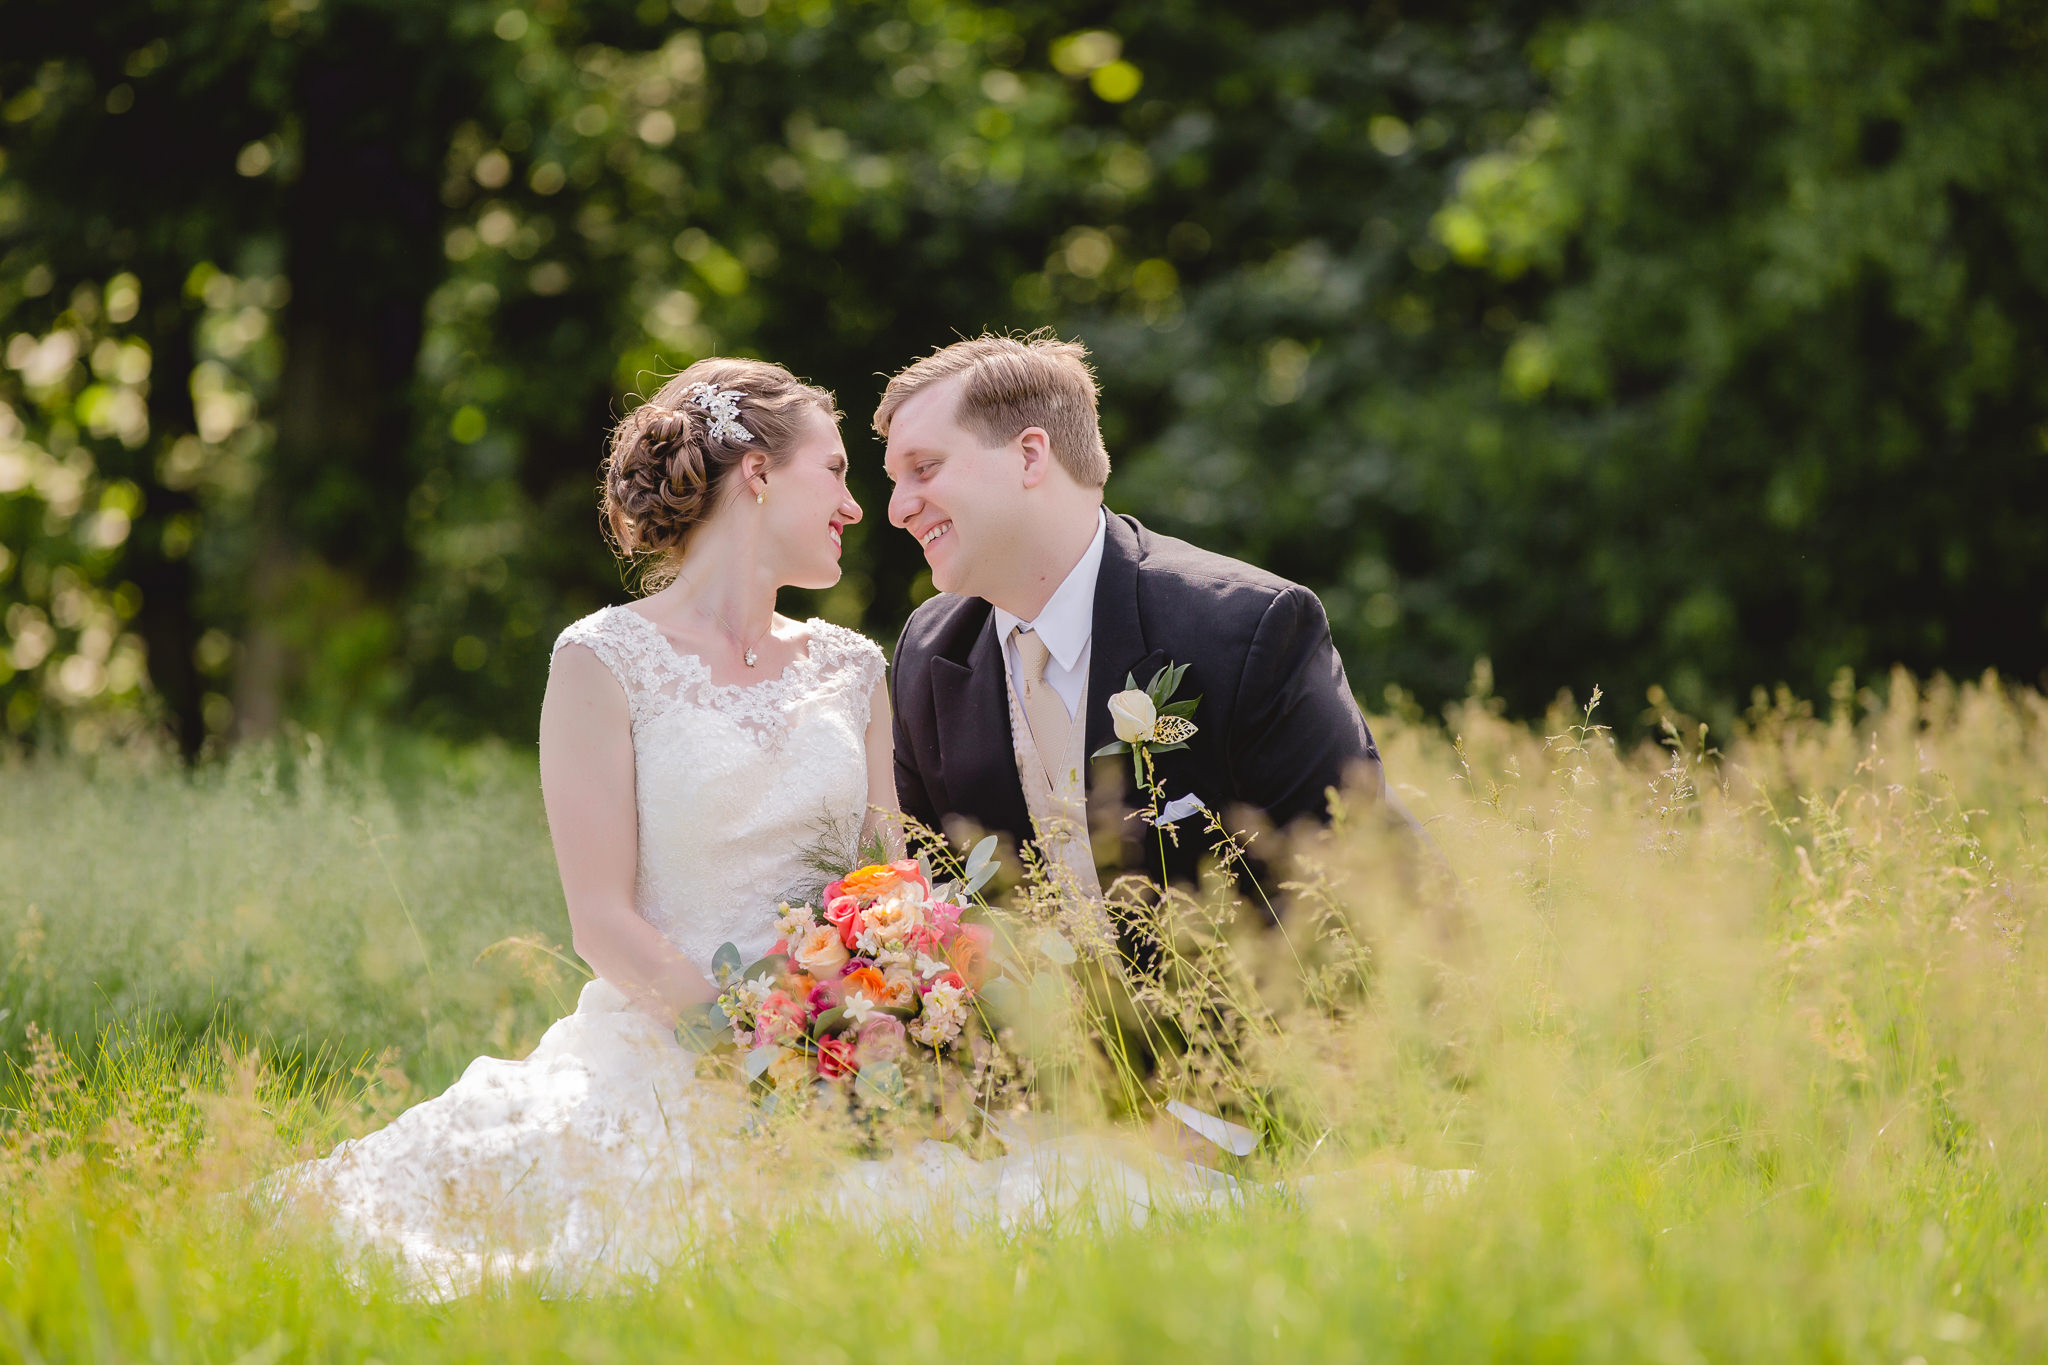 Bride & groom pose in field at Shannopin Country Club wedding